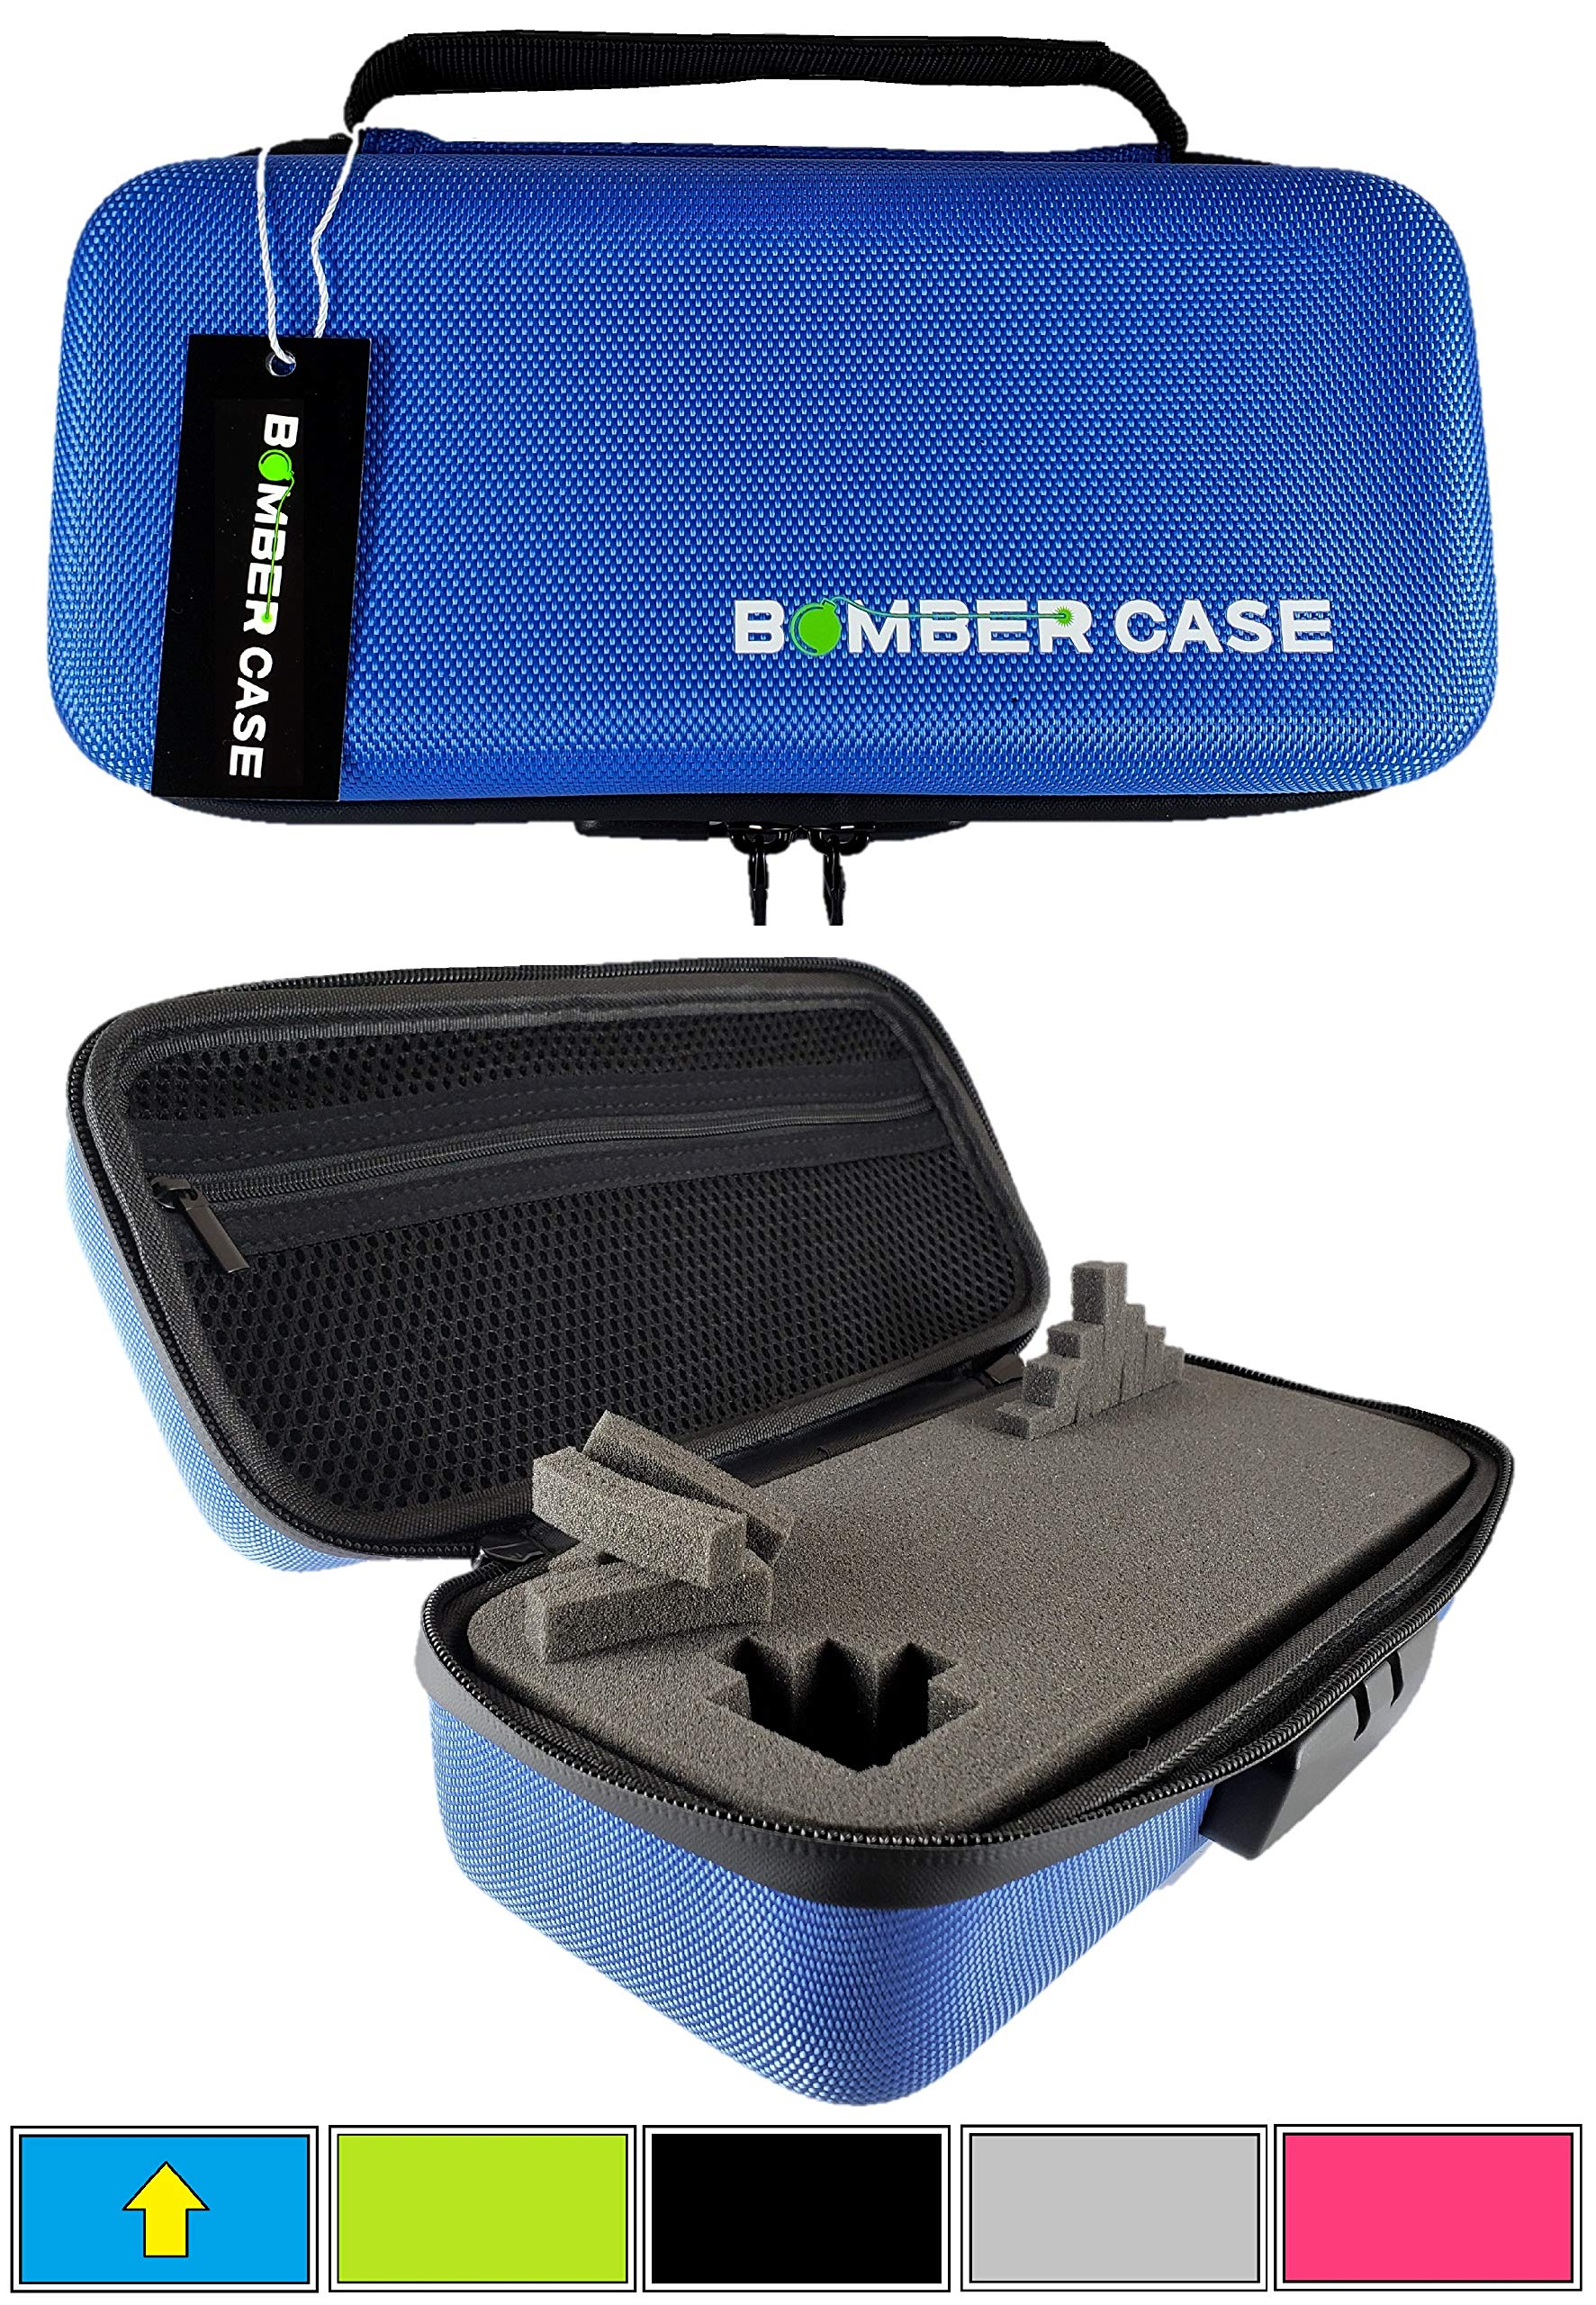 BOMBER CASE - Combination Lock Box - Smell Proof Stash Case - Customizable Foam Interior - Flexible Construction and Odor Proof Locking Zipper - Safe Container - 9.5'' x 4'' x 3.5'' - Blue by BOMBER CASE